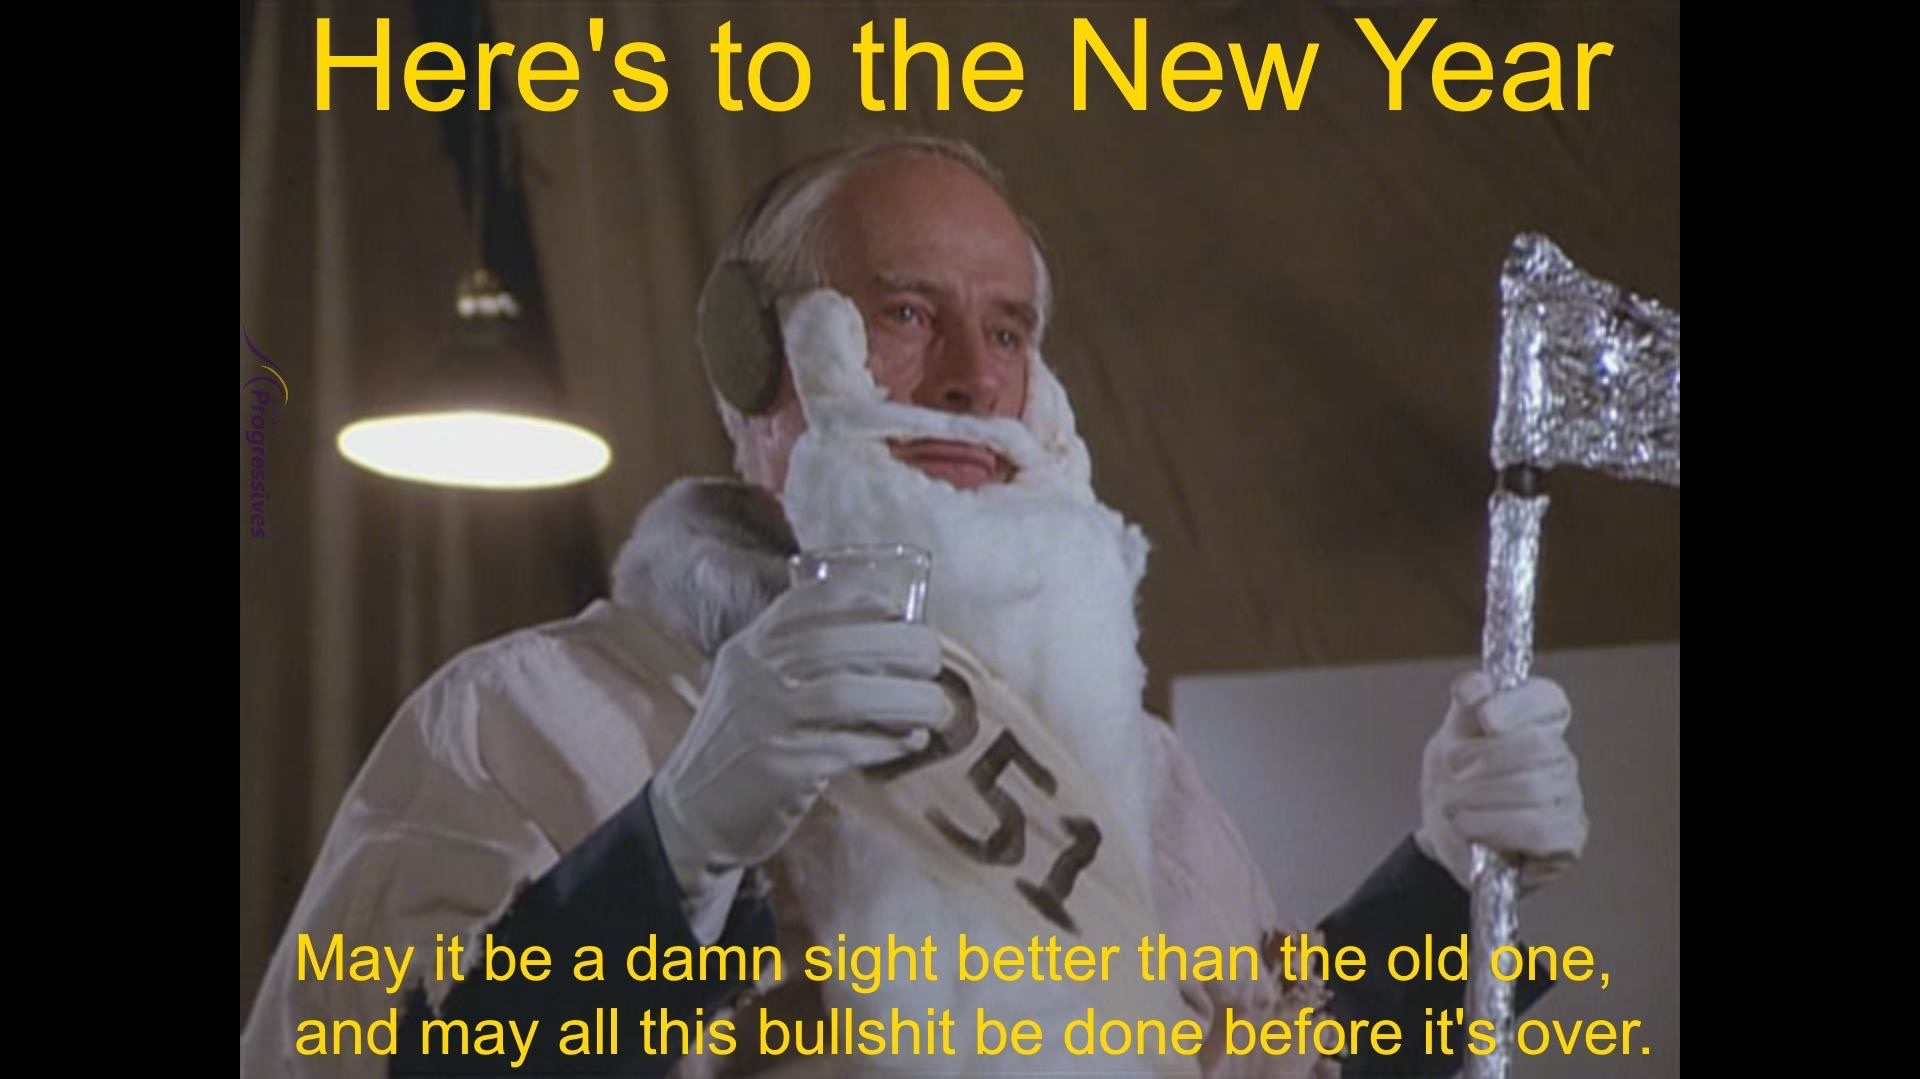 here's to the New Year - meme